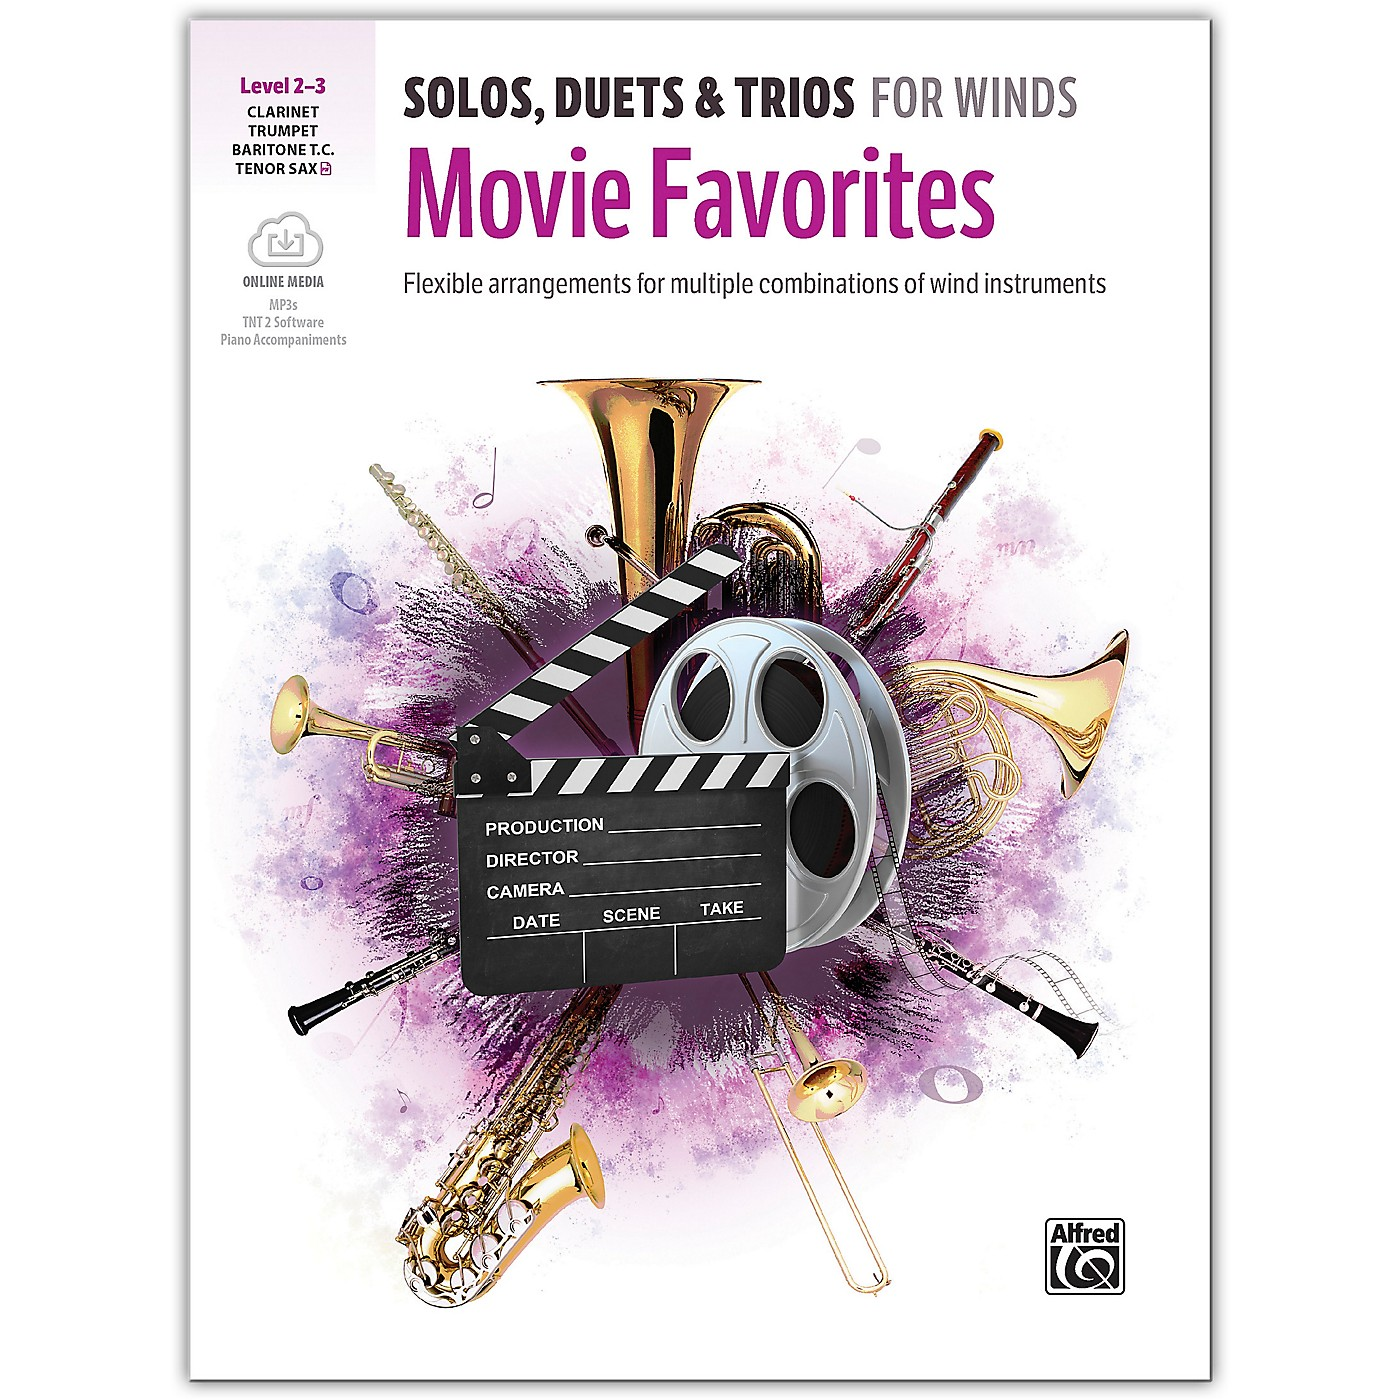 Alfred Solos, Duets & Trios for Winds: Movie Favorites Trumpet, Clarinet, Baritone TC, Tenor Sax 2-3 thumbnail